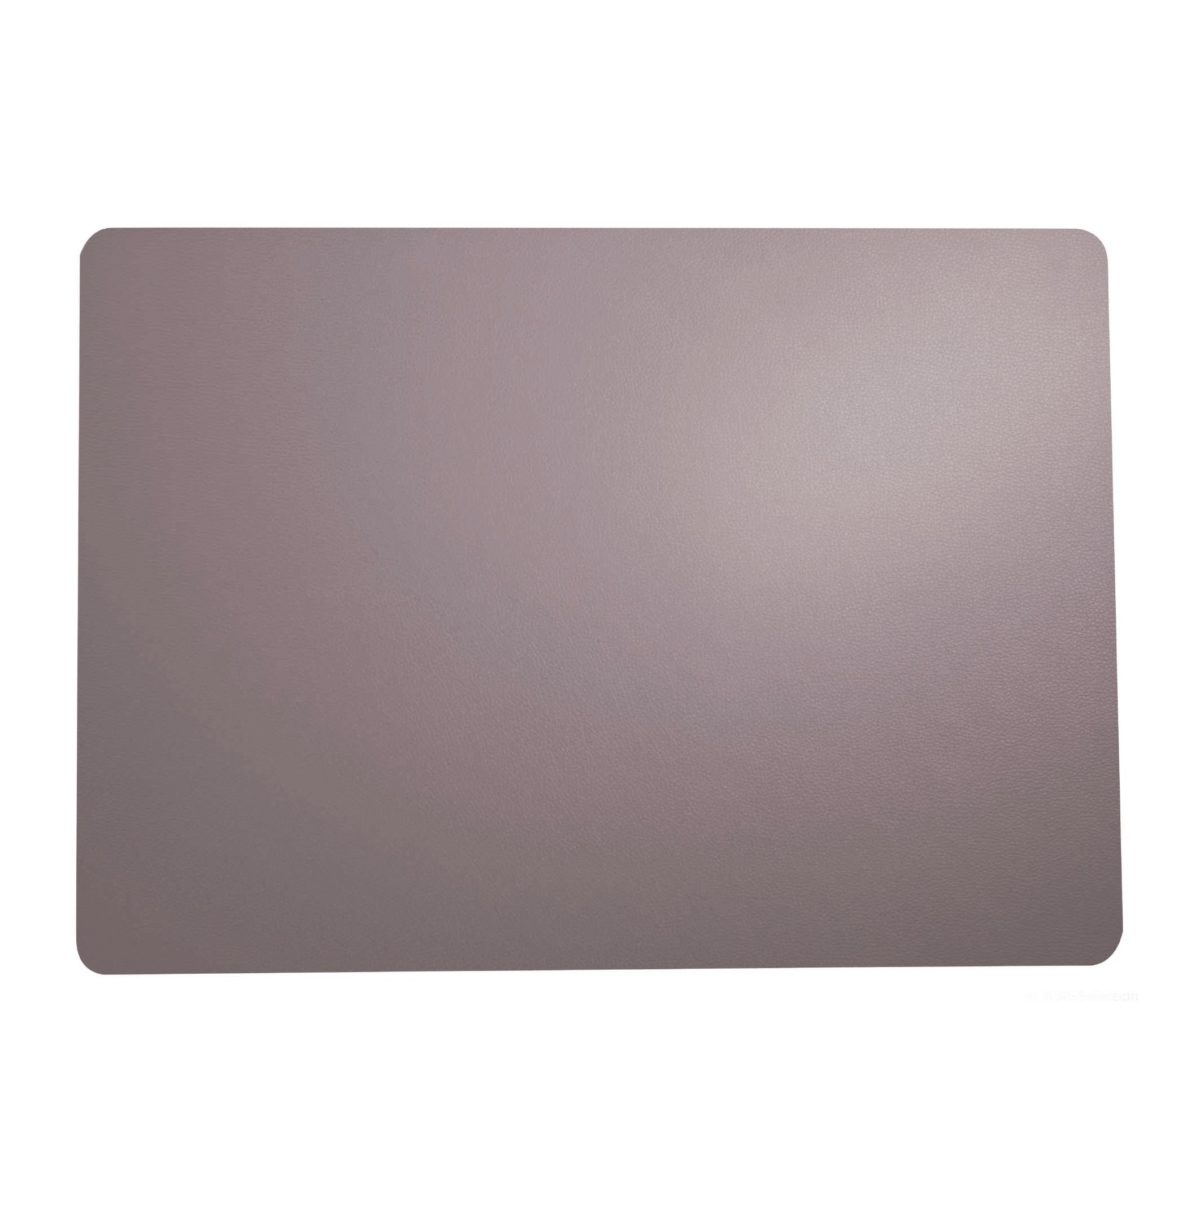 7820420 lavende 1 1200x1211 - Placemat Leather optic fine lavande 46*33 cm (7820420)